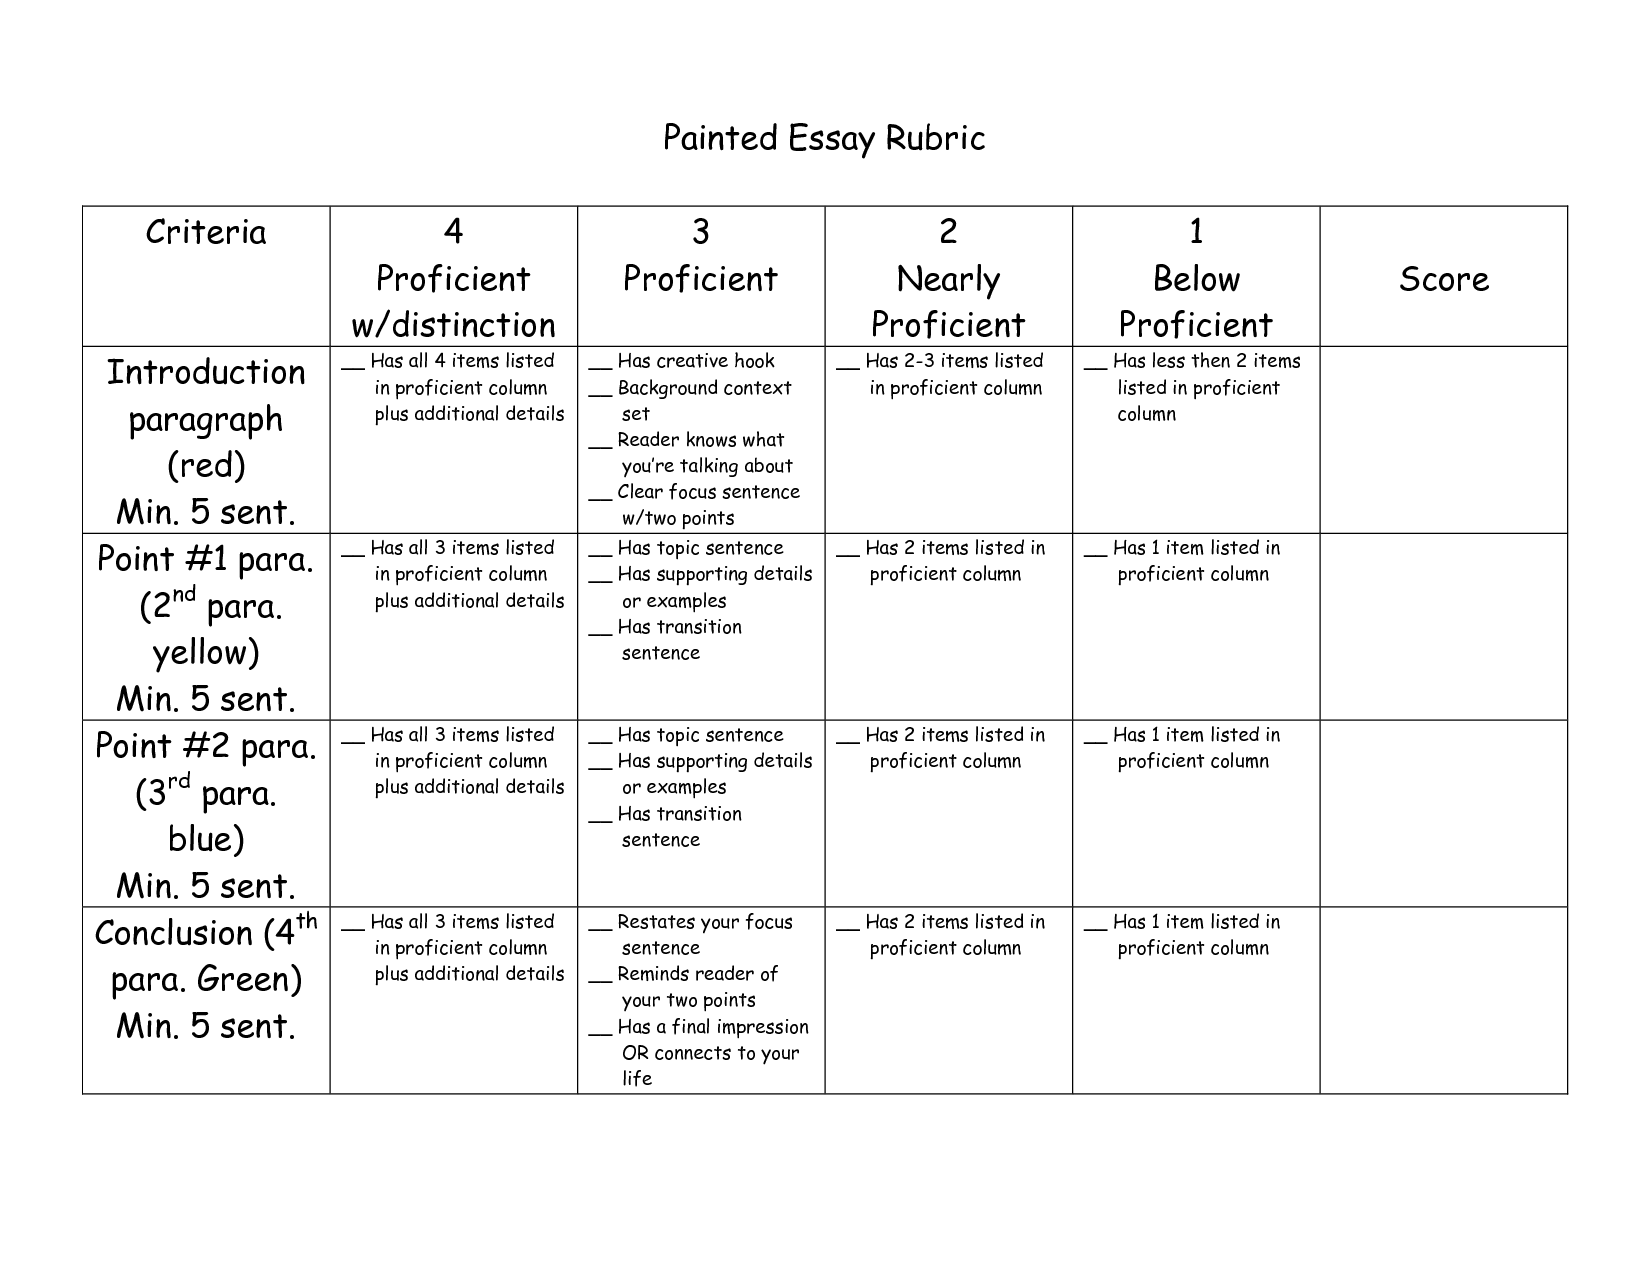 painted essay rubric by noonans language arts painted essay rubric by noonans